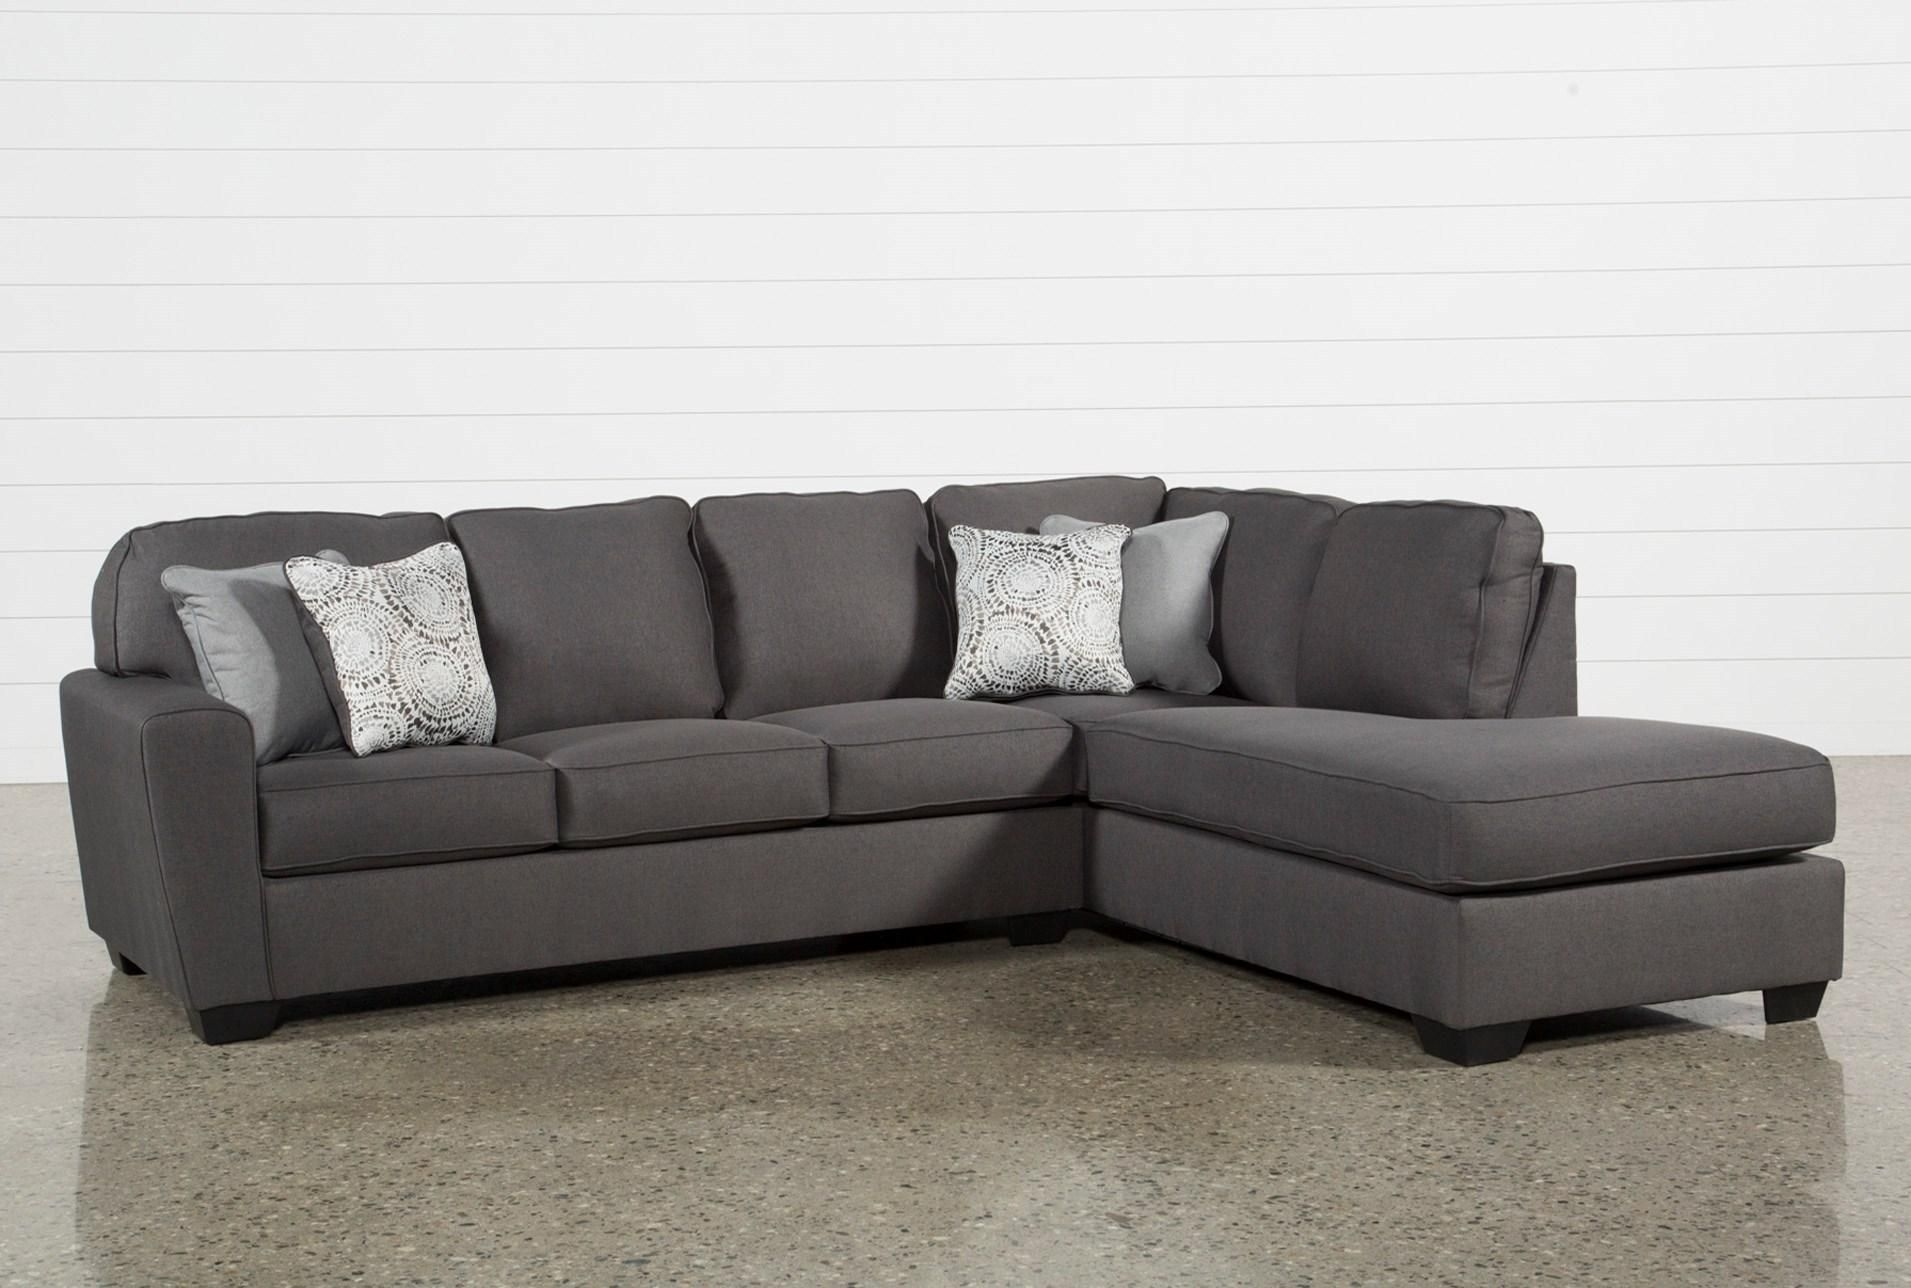 Mcdade Graphite 2 Piece Sectional W/raf Chaise | Livingroom In Josephine 2 Piece Sectionals With Laf Sofa (Image 21 of 25)